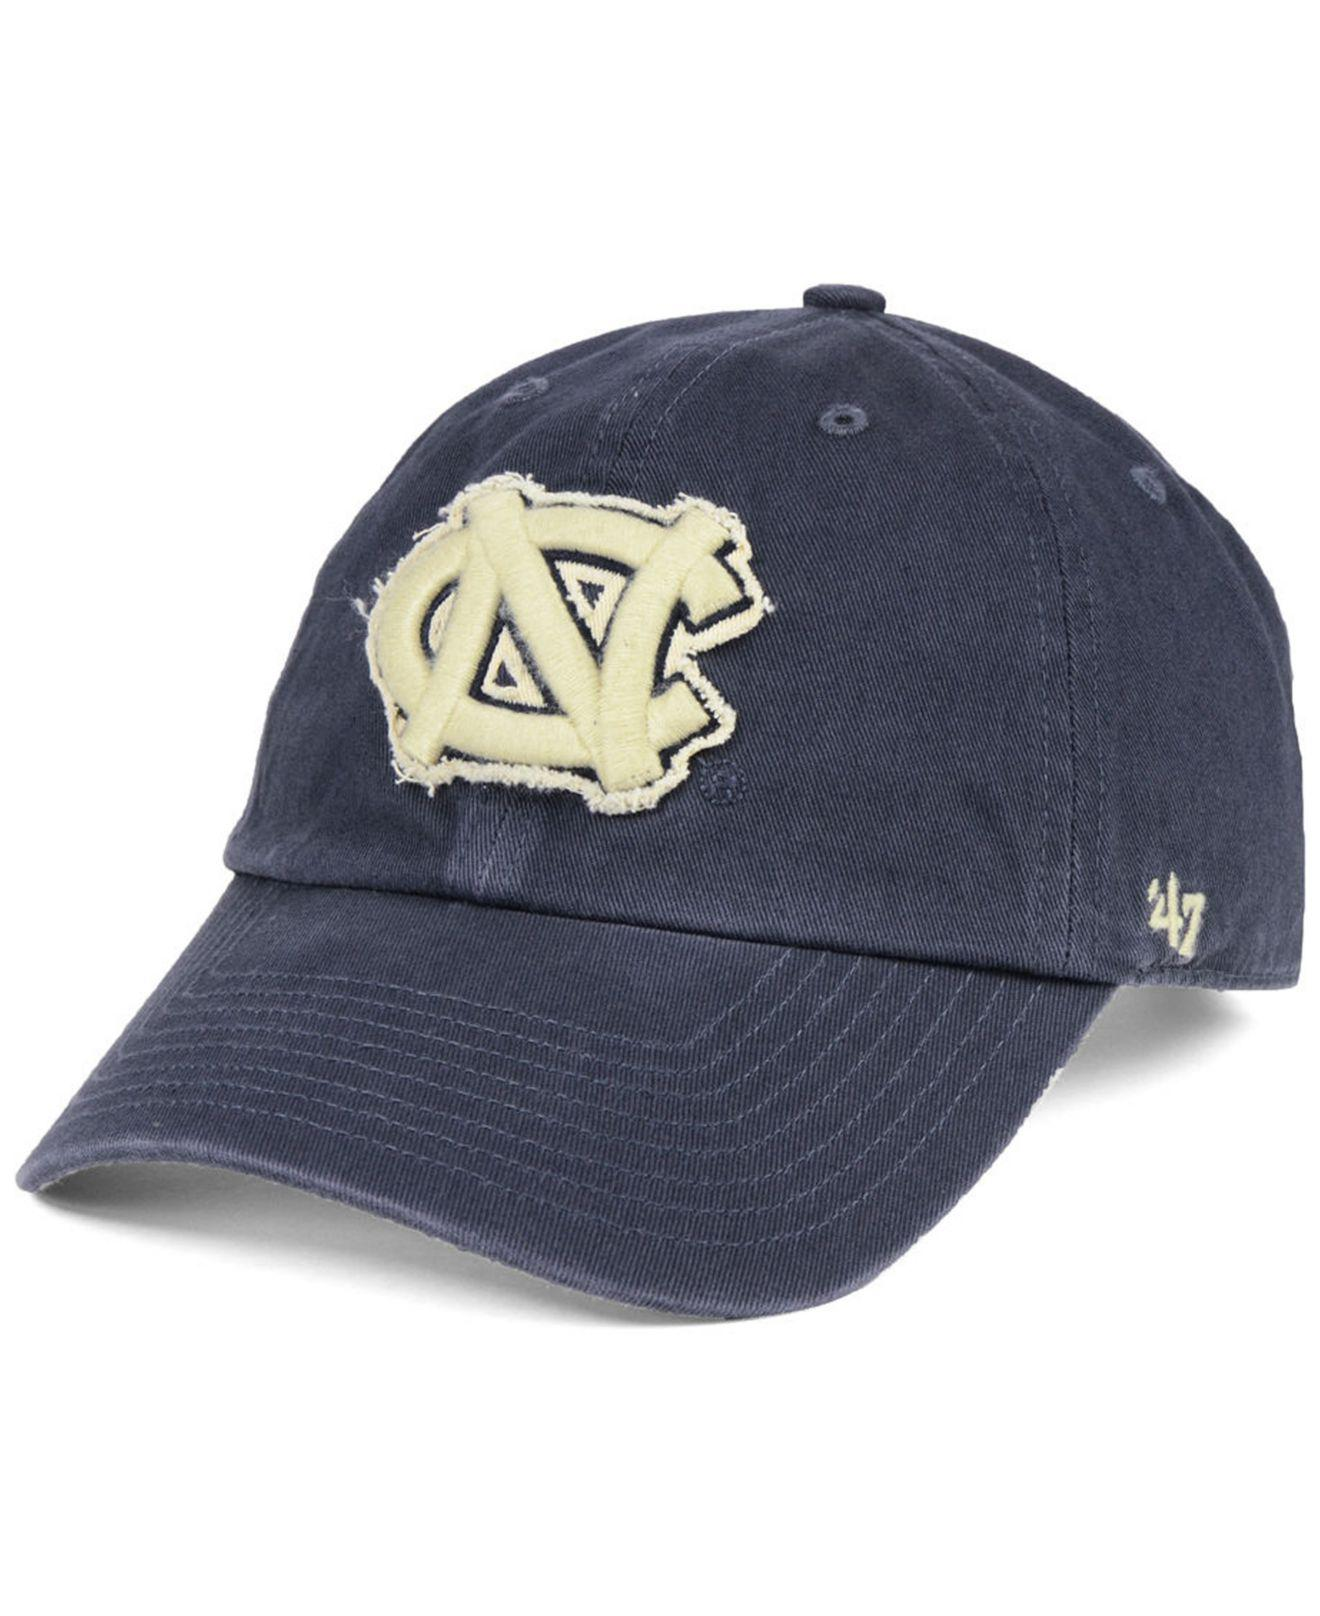 Lyst - 47 Brand North Carolina Tar Heels Double Out Clean Up Cap in ... c29e070705